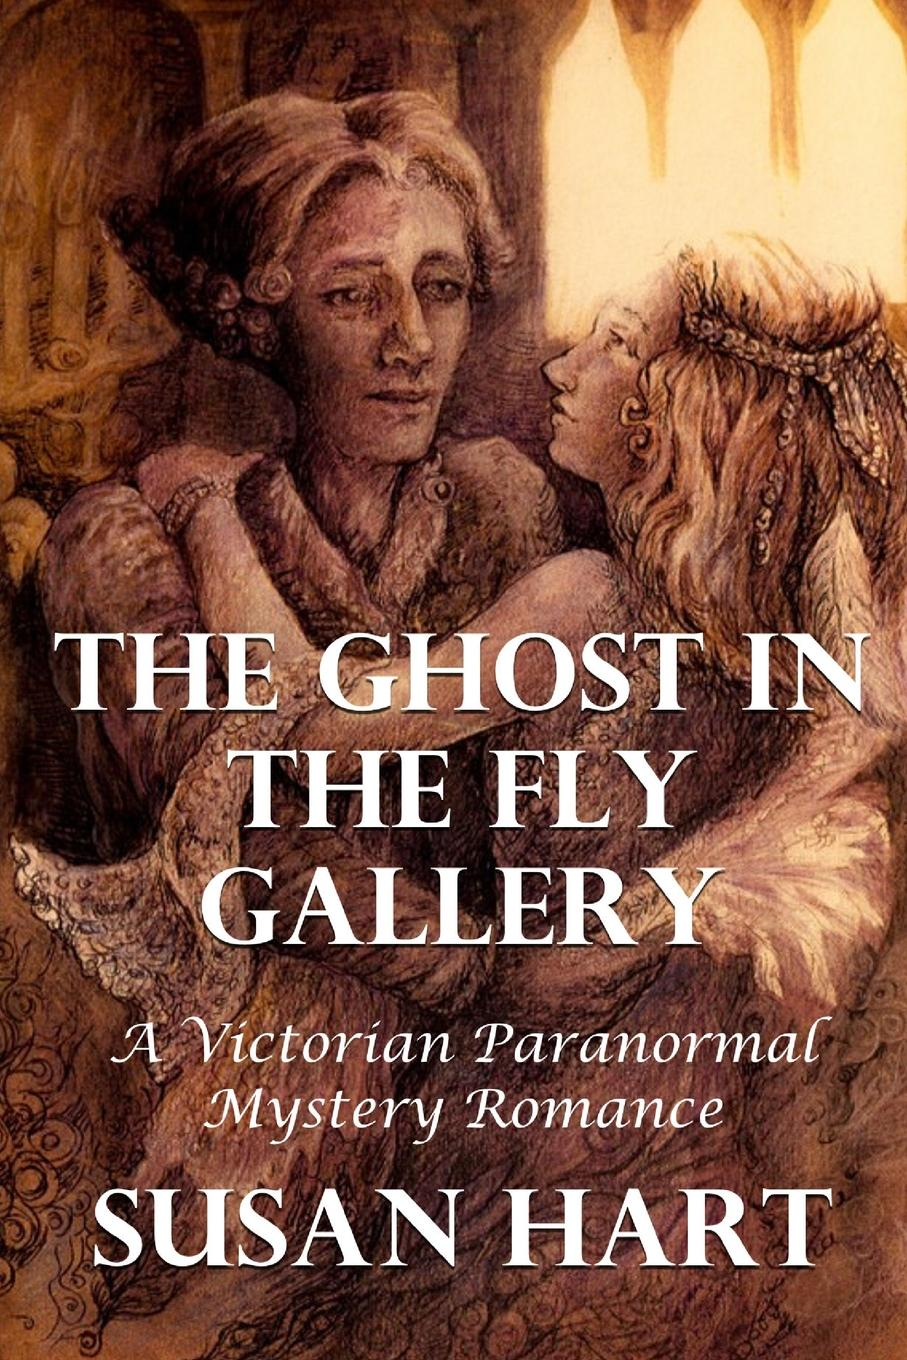 Susan Hart The Ghost In The Fly Gallery. A Victorian Paranormal Mystery Romance